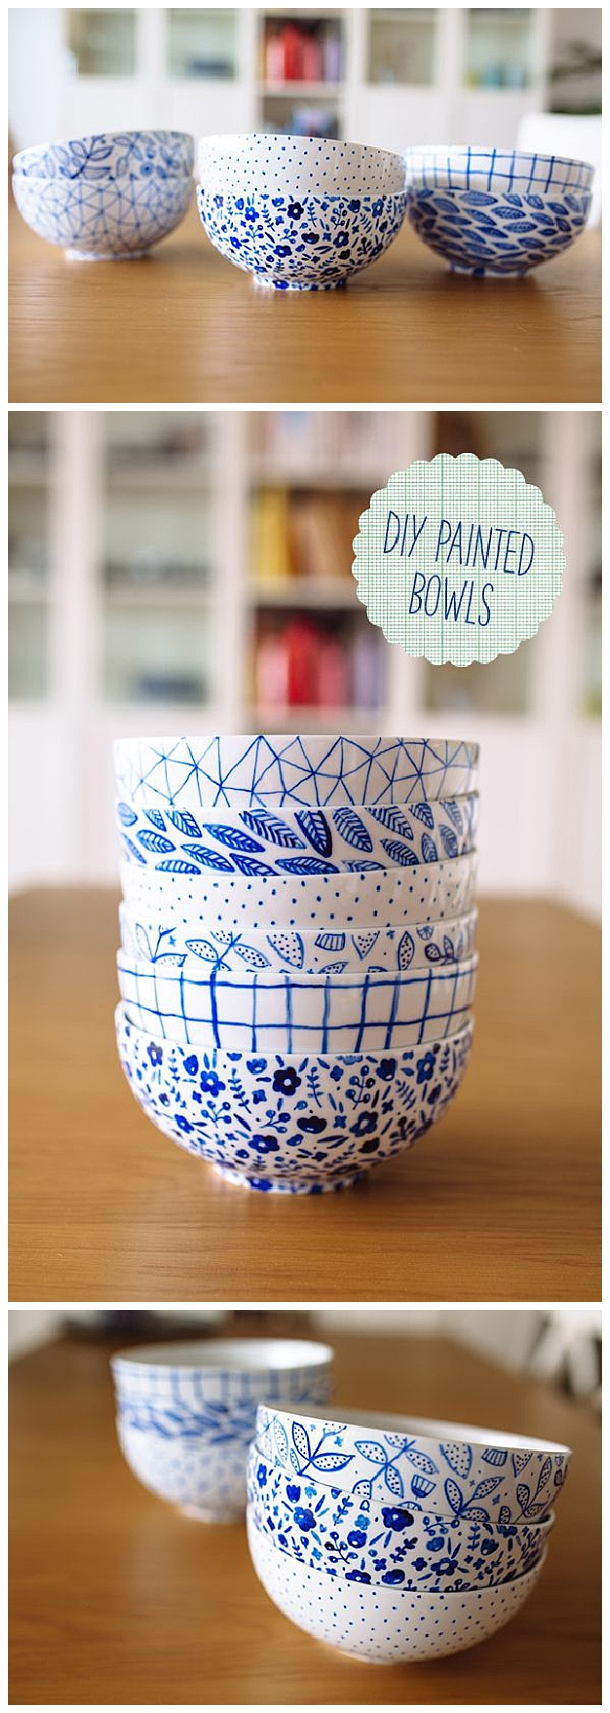 These would make the prettiest gifts - fill them with homemade baked treats! DIY Painted Bowls Tutorial | fellowfellow